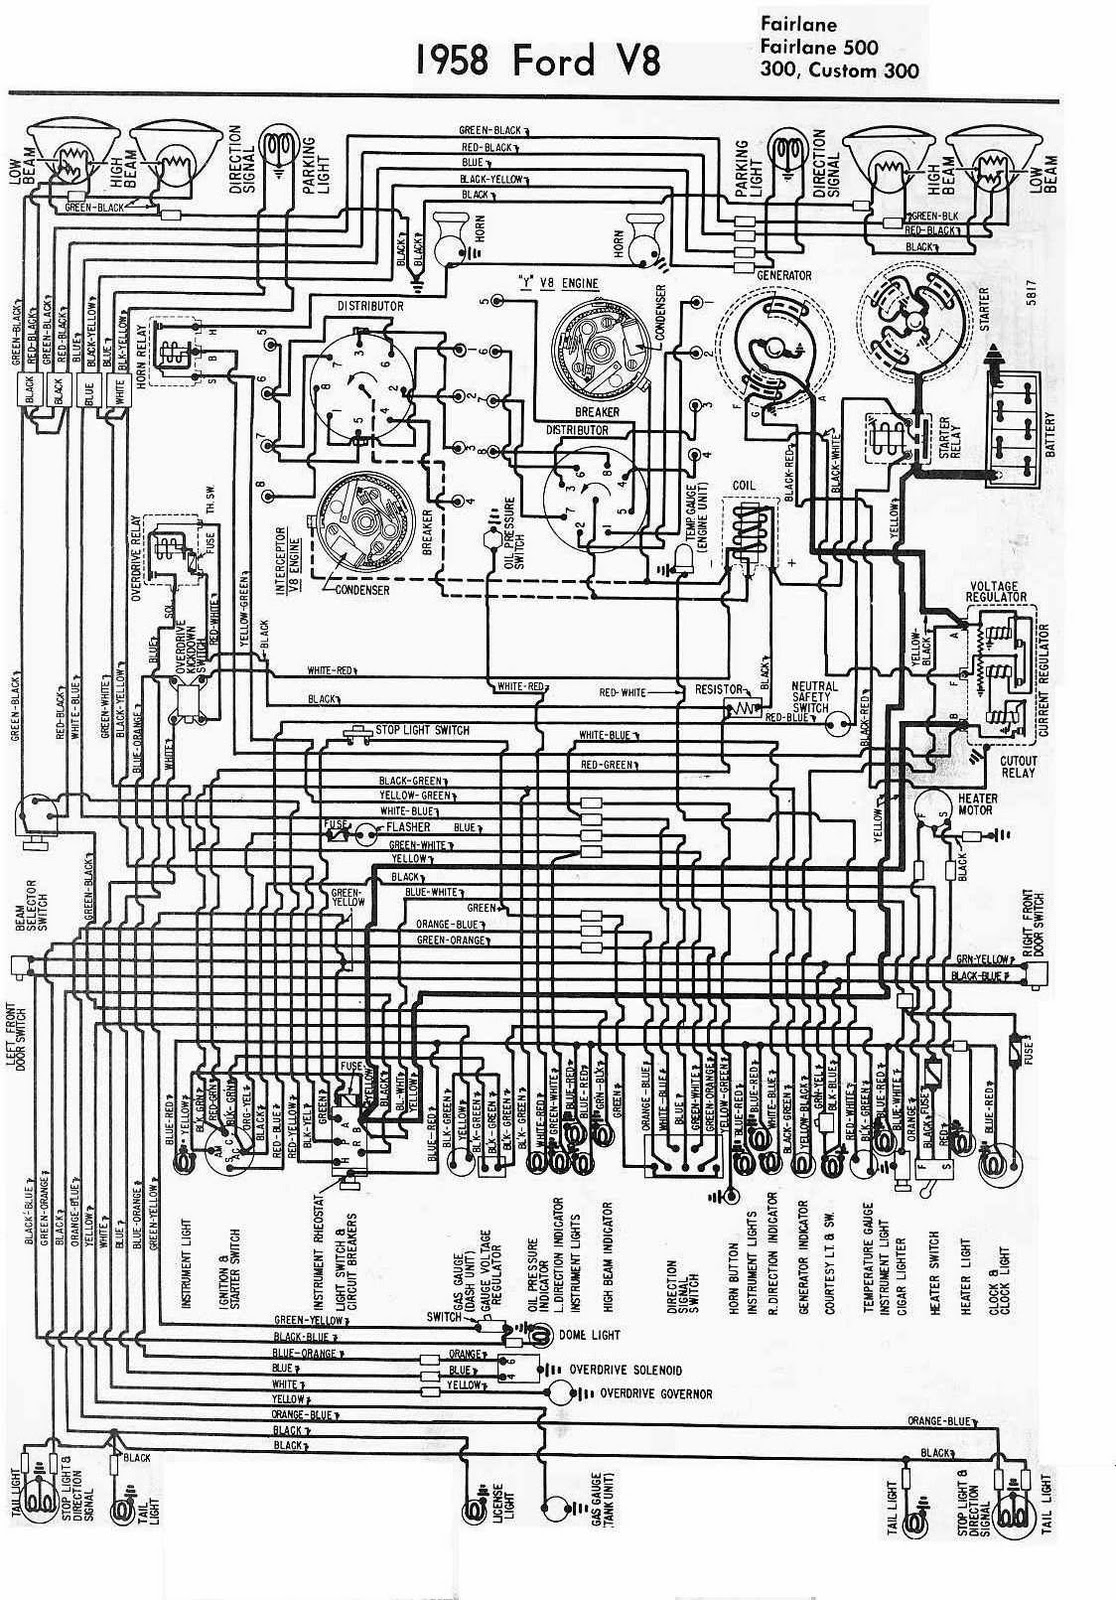 2000 gmc jimmy vacuum hose diagram  2000  free engine